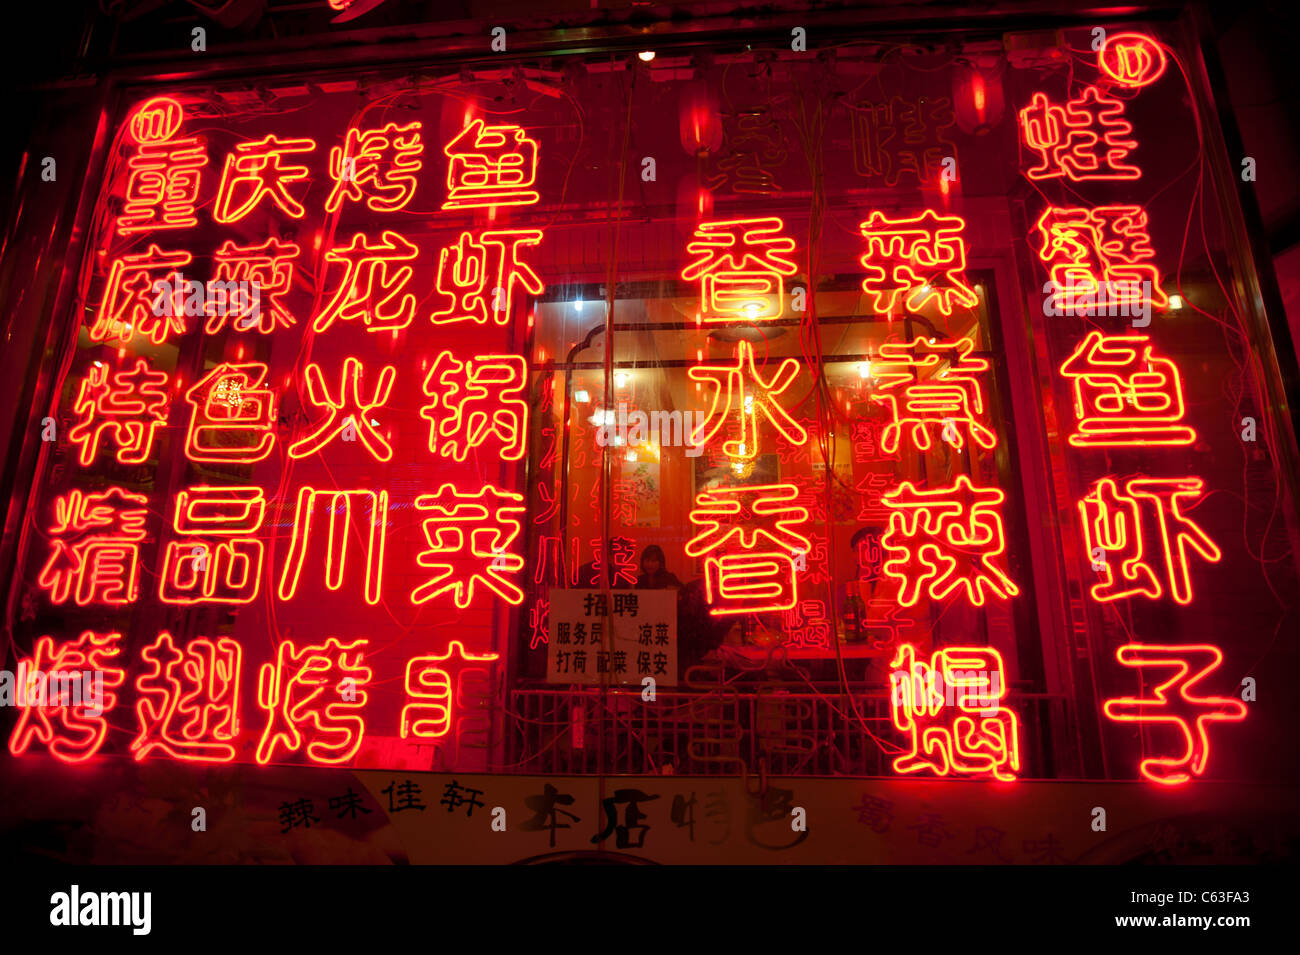 Many red neon lights at night  illuminating menu at Chinese restaurant in Beijing China - Stock Image